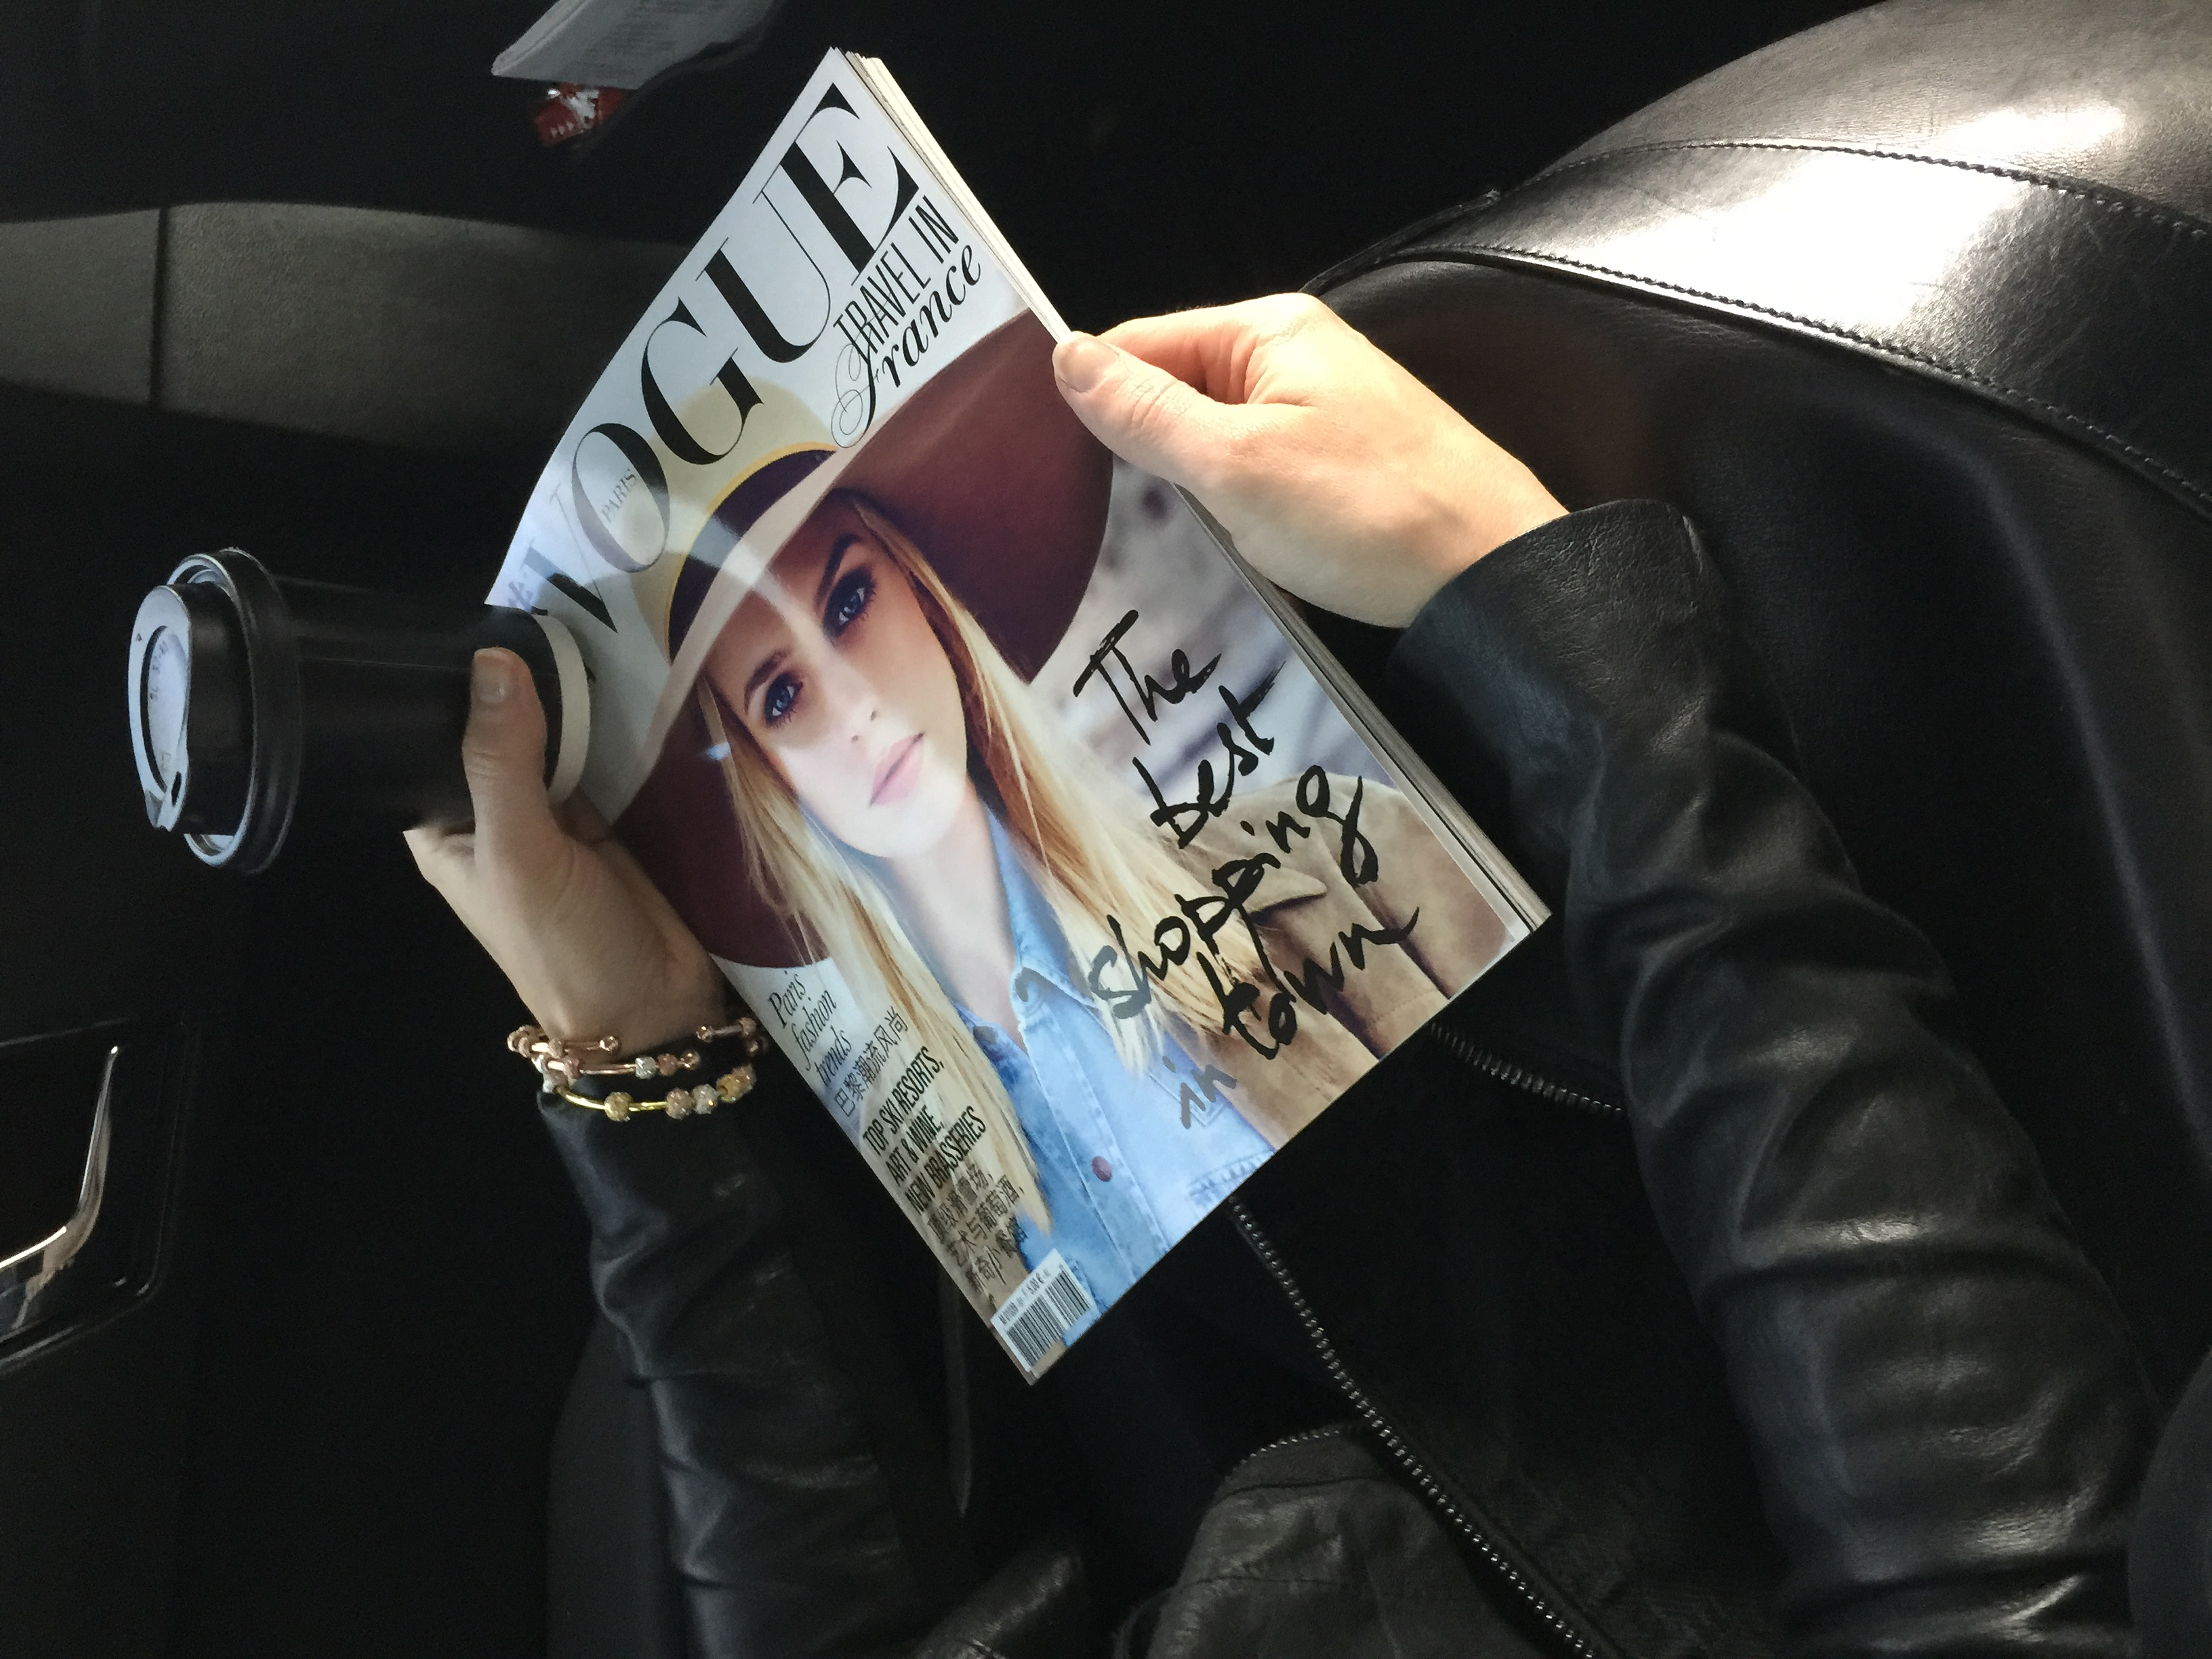 Chelsea Charles Count Me Healthy Journal Bracelets and French Vogue